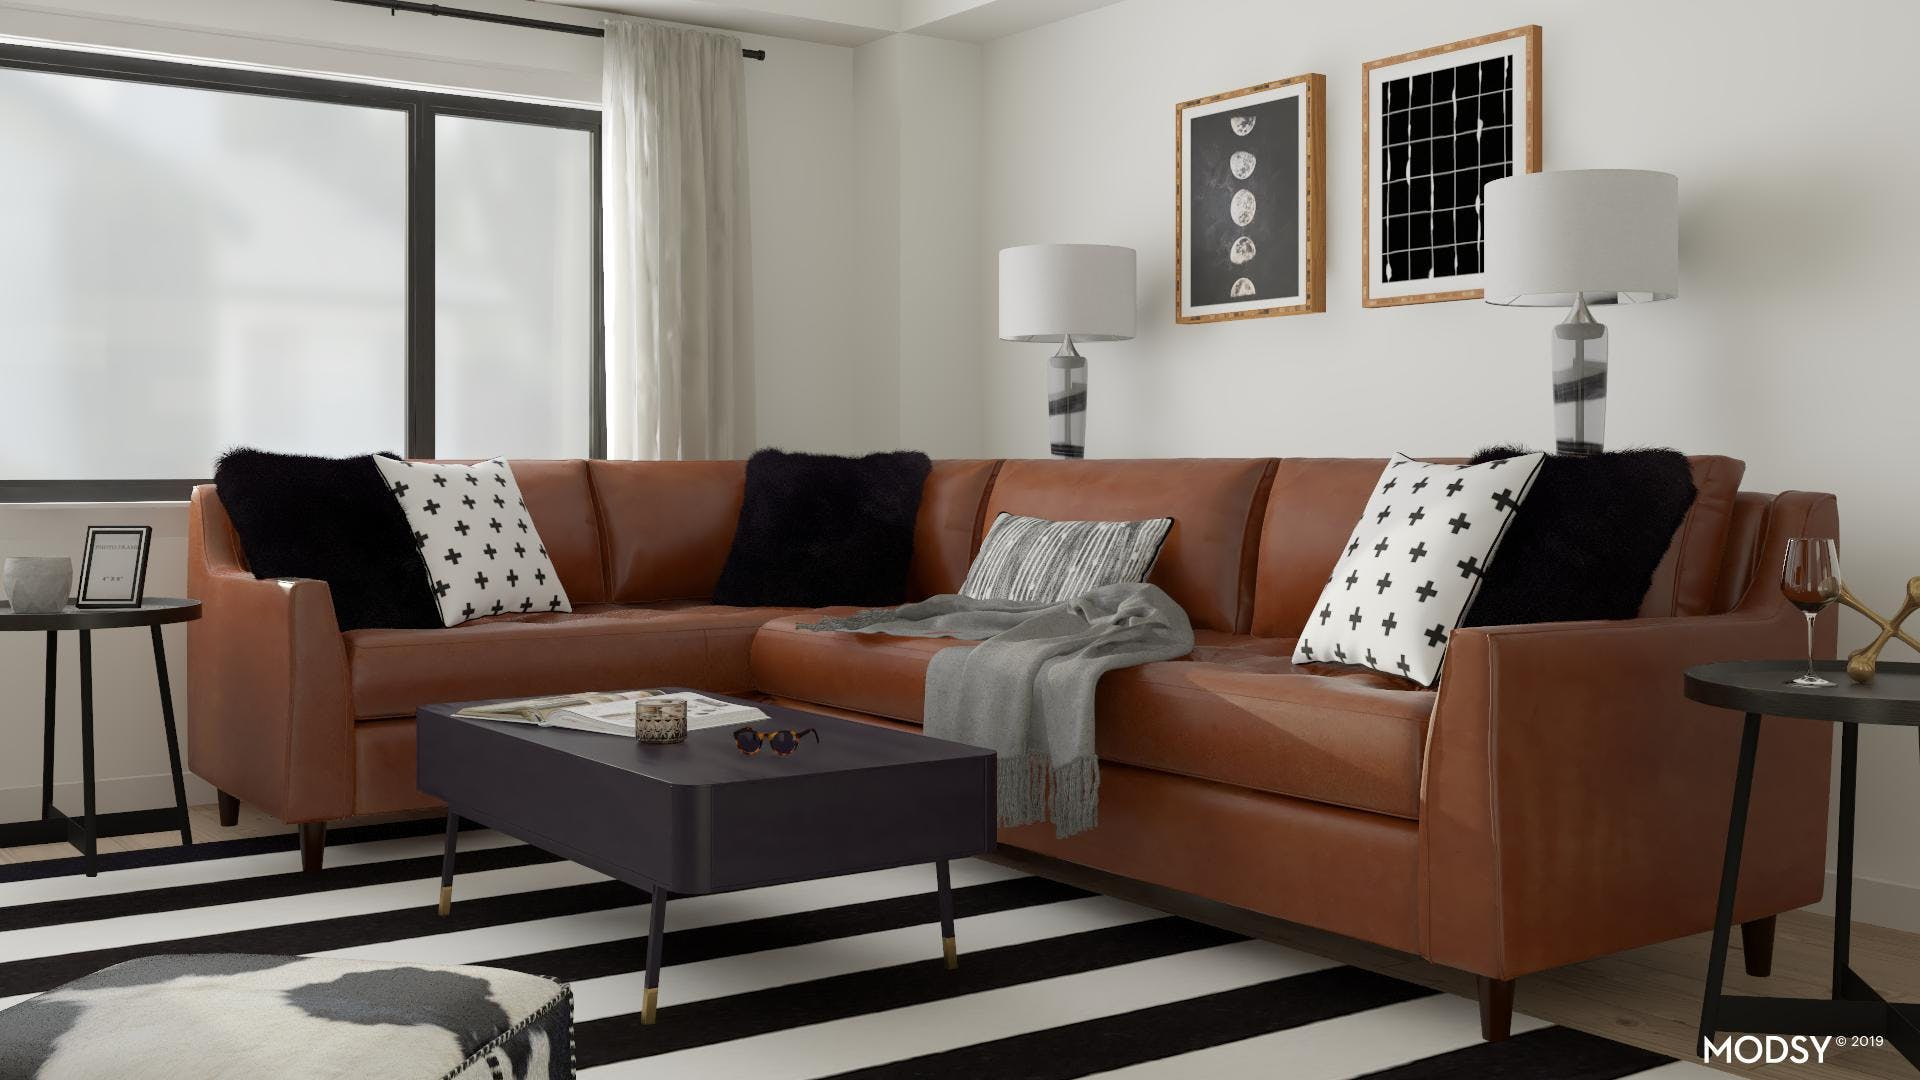 A Masculine Touch To Mid-Century Modern Design